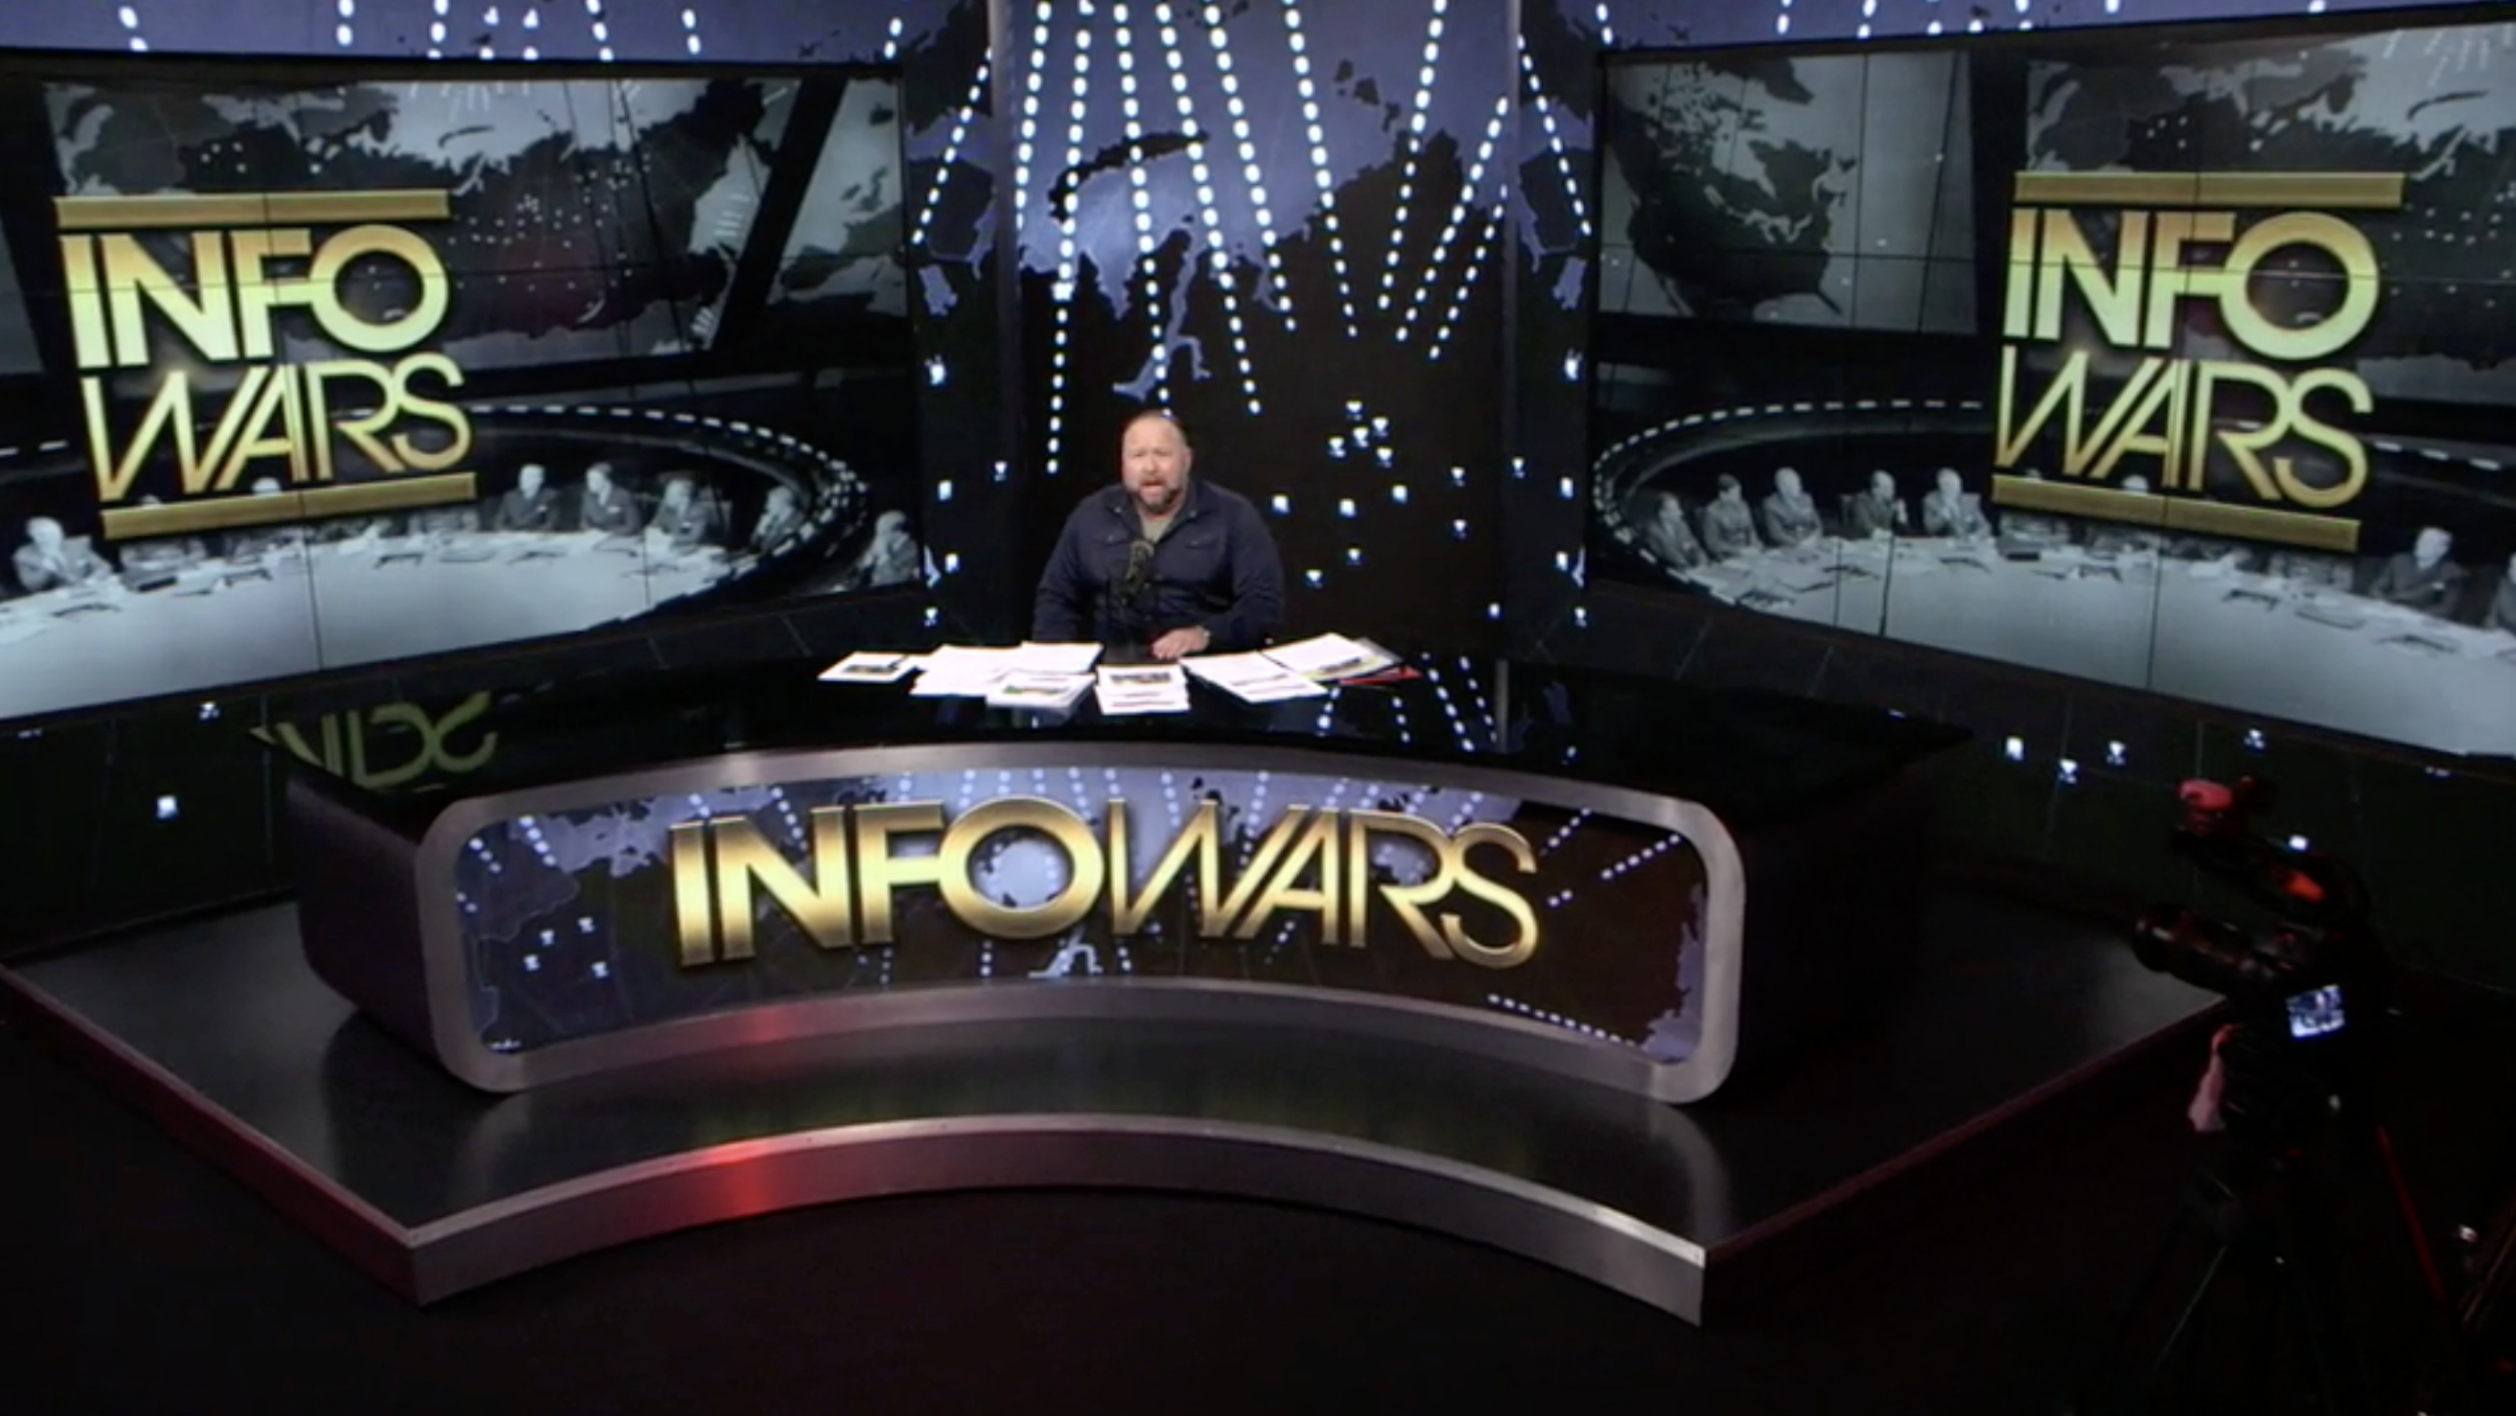 Alex Jones Infowars Studio The Resistance Video EXZM Zack Mount January 18th 2021